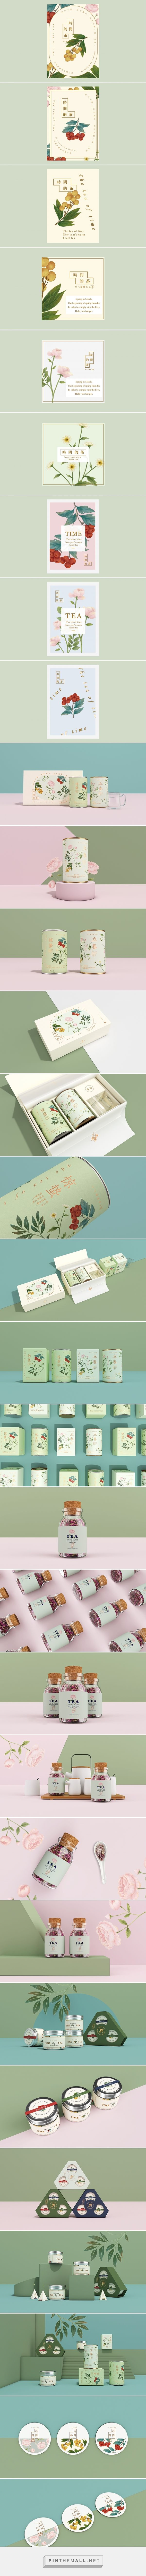 Tea of Time Tea Branding and Packaging by Hellocean | Fivestar Branding Agency – Design and Branding Agency & Curated Inspiration Gallery